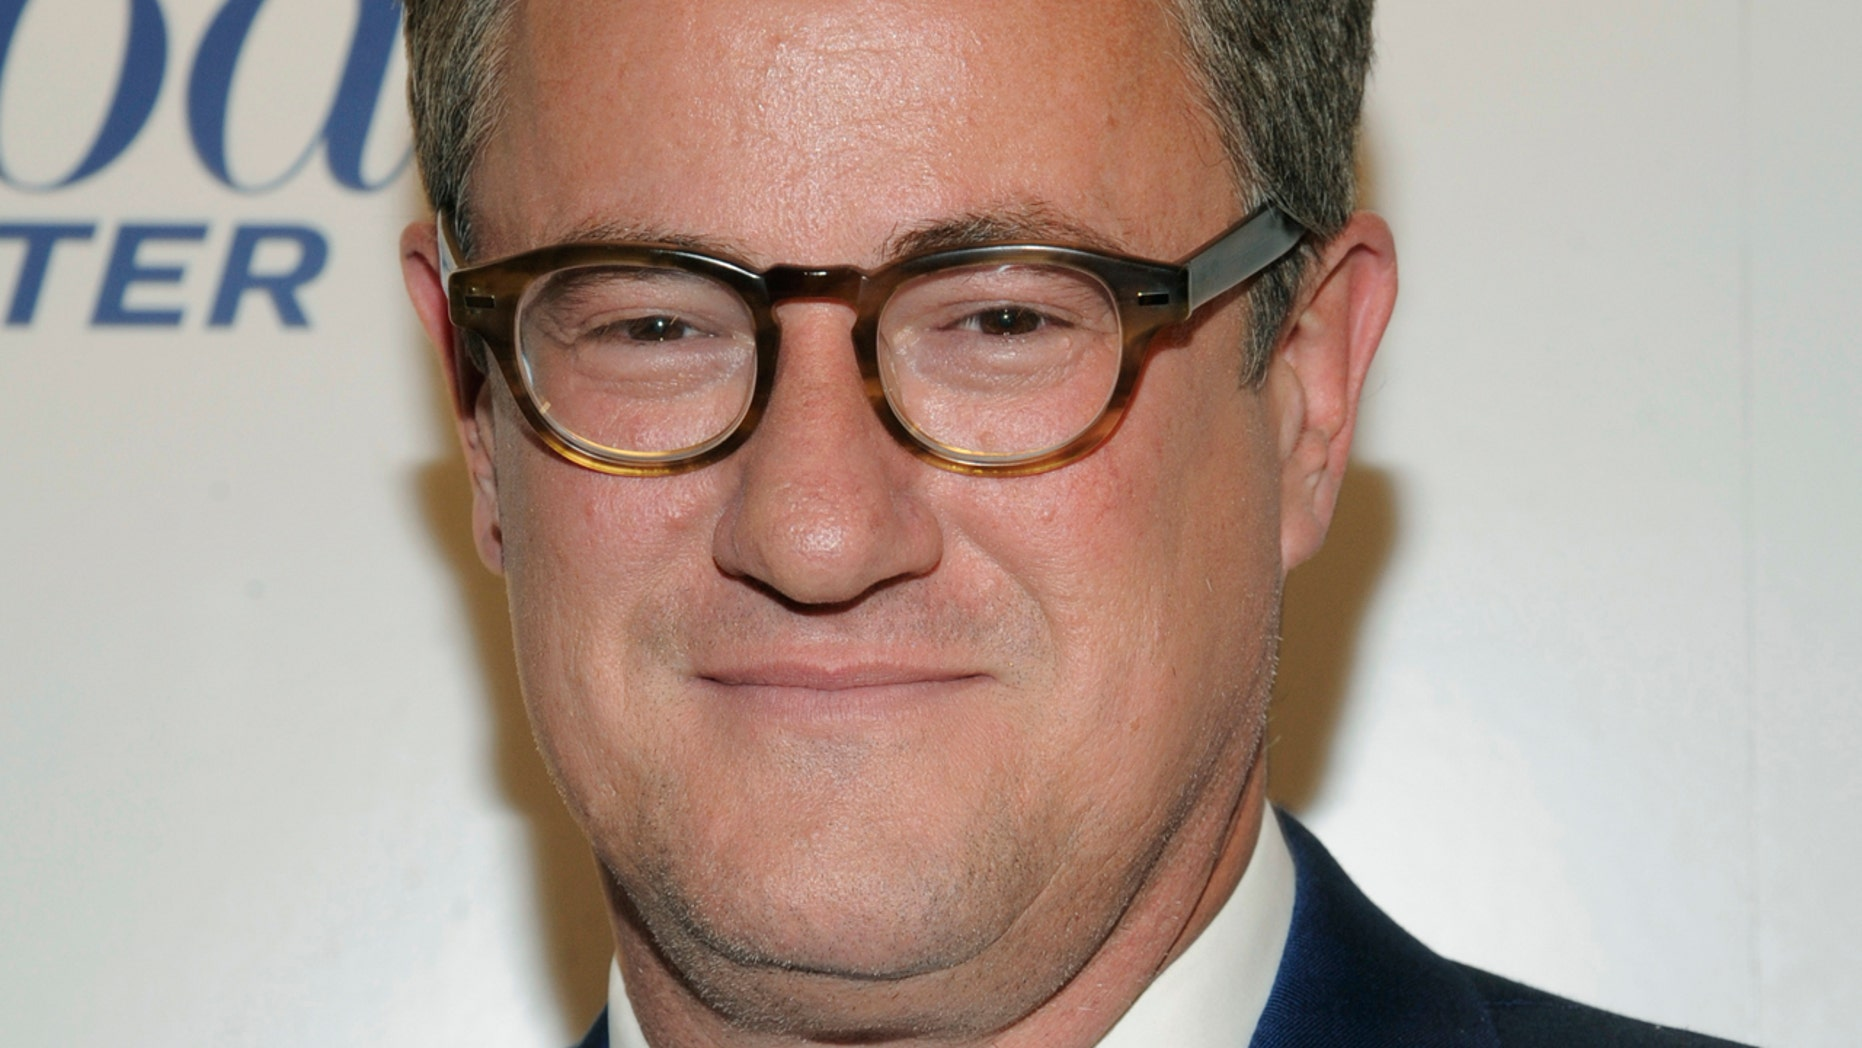 "FILE - In this April 11, 2012 file photograph taken by AP Images for The Hollywood Reporter, 'Morning Joe' host Joe Scarborough arrives at The Hollywood Reporter 35 Most Powerful People in Media event in New York. MSNBC host and former Republican Congressman Scarborough says he's leaving the GOP. The ""Morning Joe"" co-host has become a sharp critic of President Donald Trump. Scarborough said Tuesday, July 11, 2017, during an interview with CBS ""Late Show"" host Stephen Colbert that ""I've got to become an independent."" (Evan Agostini/AP Images for The Hollywood Reporter, File)"